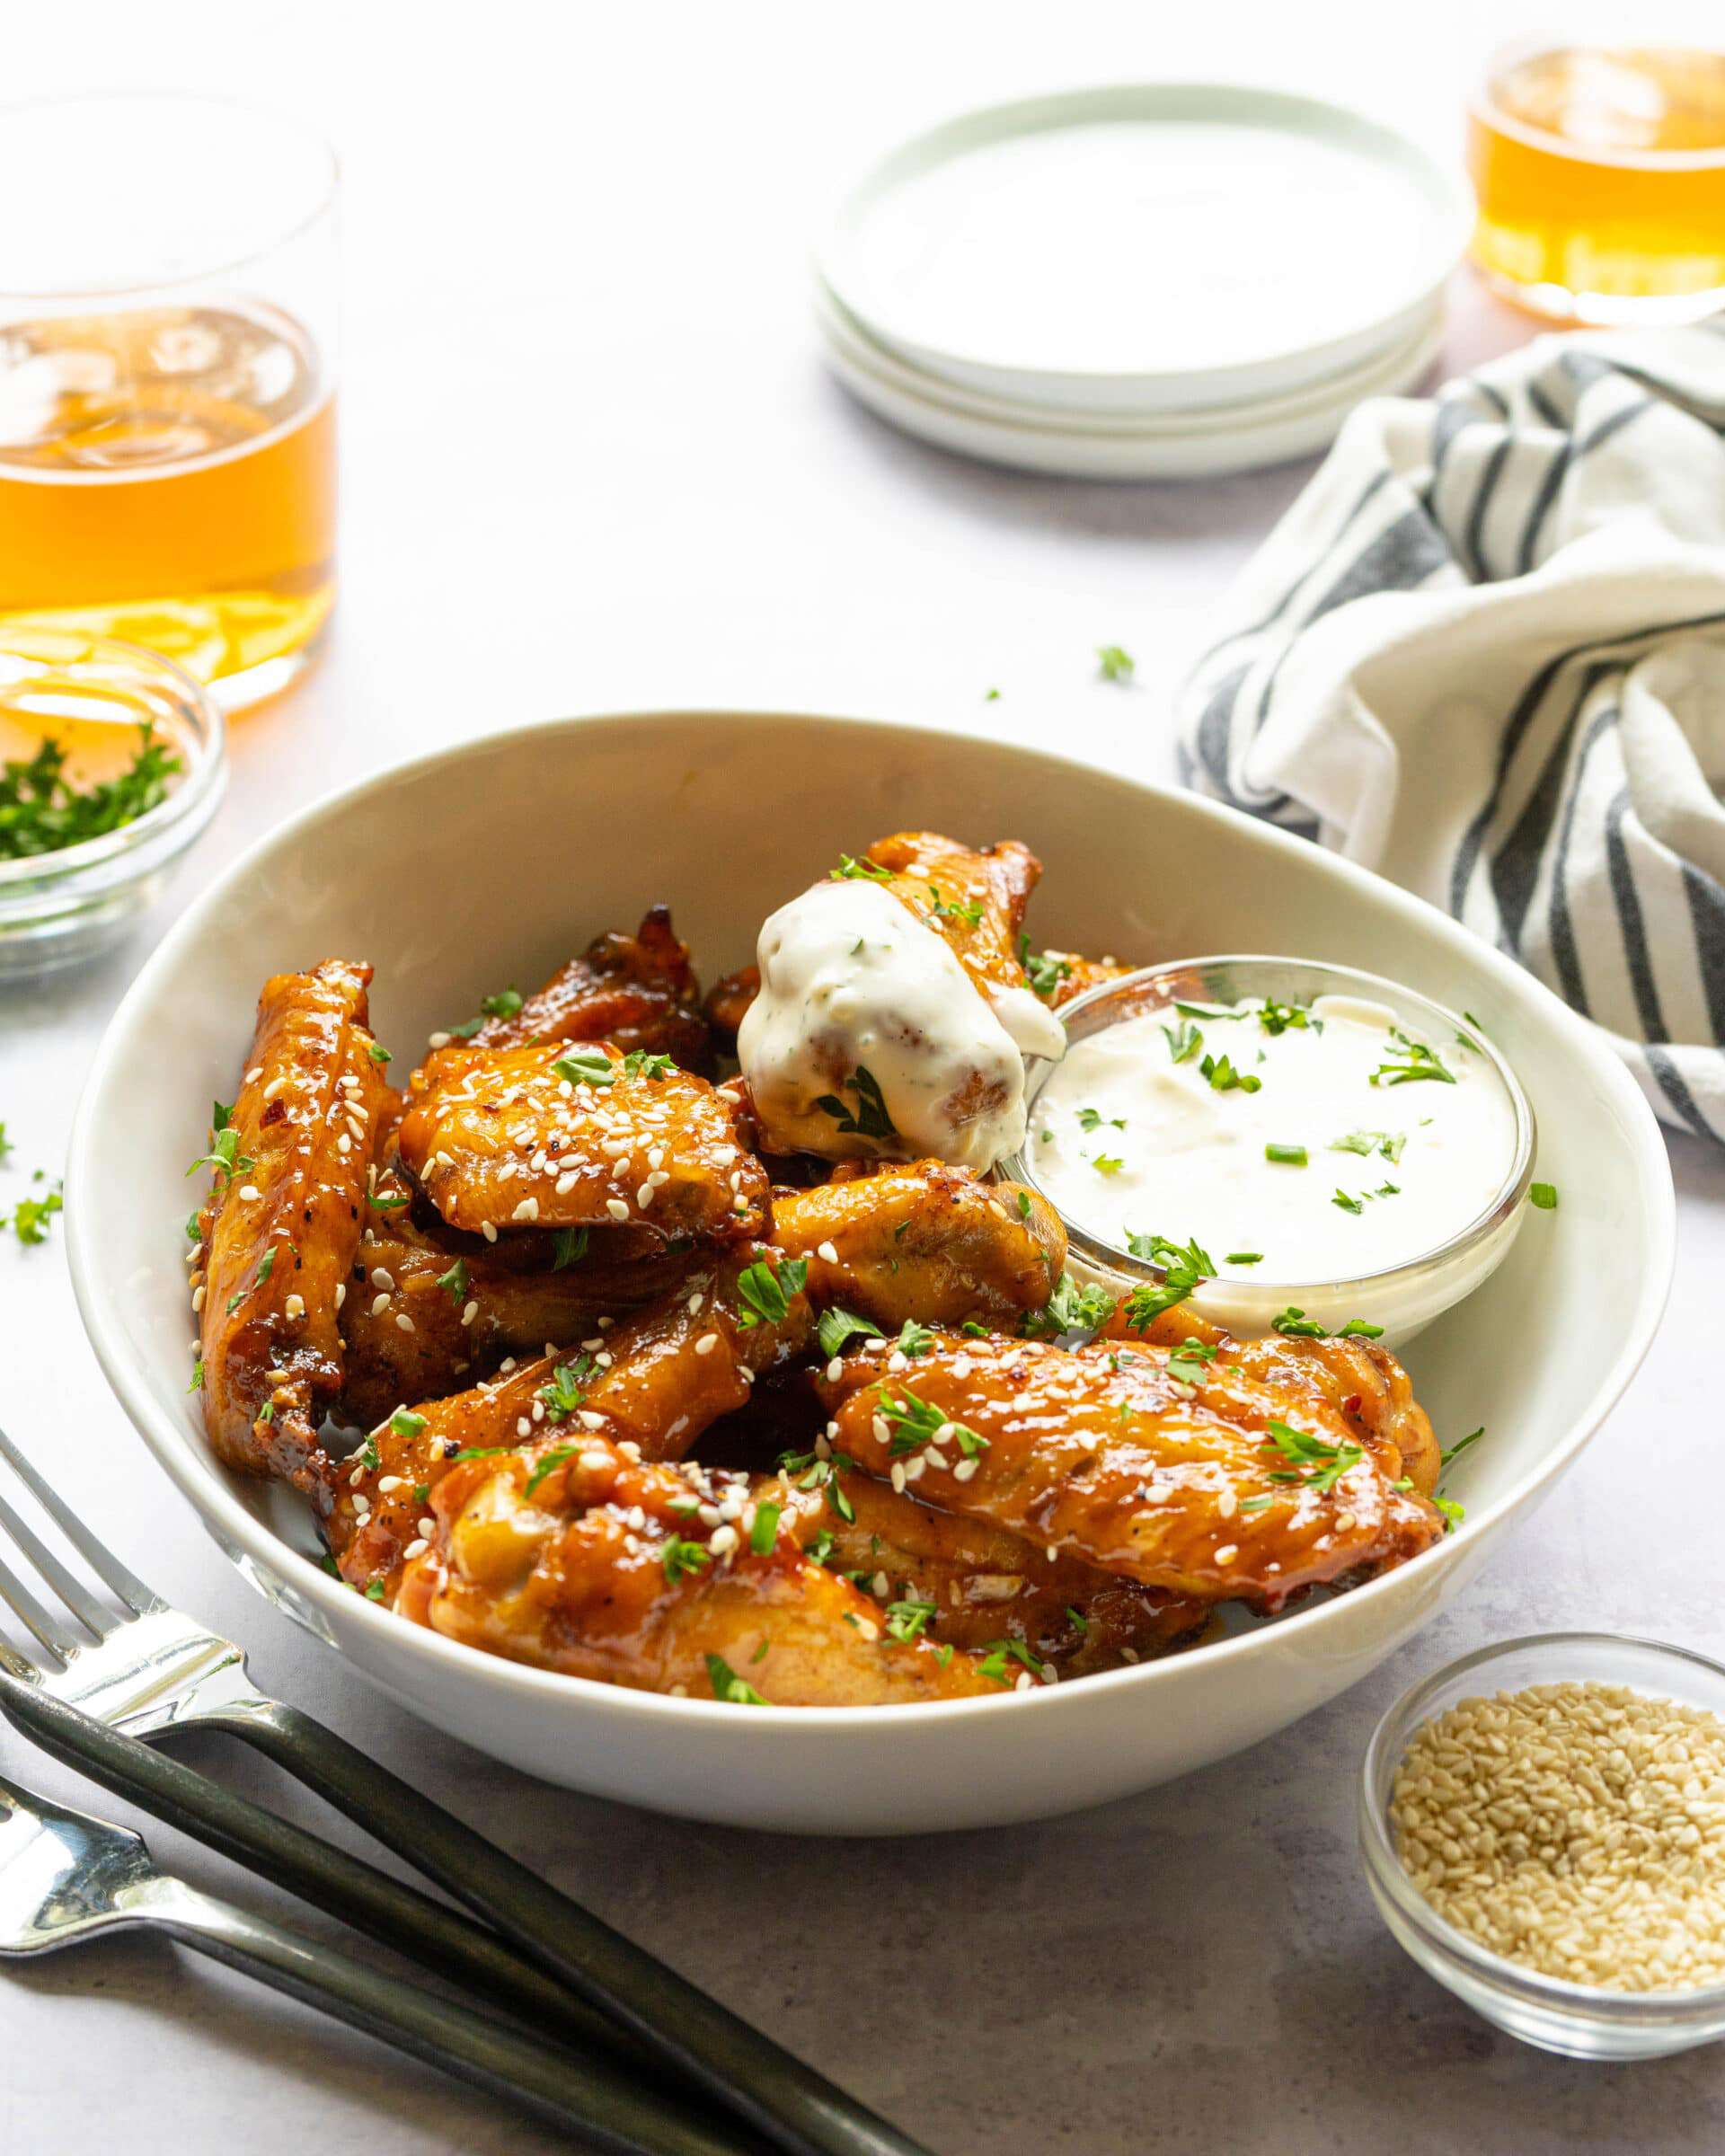 Sticky wings in a bowl